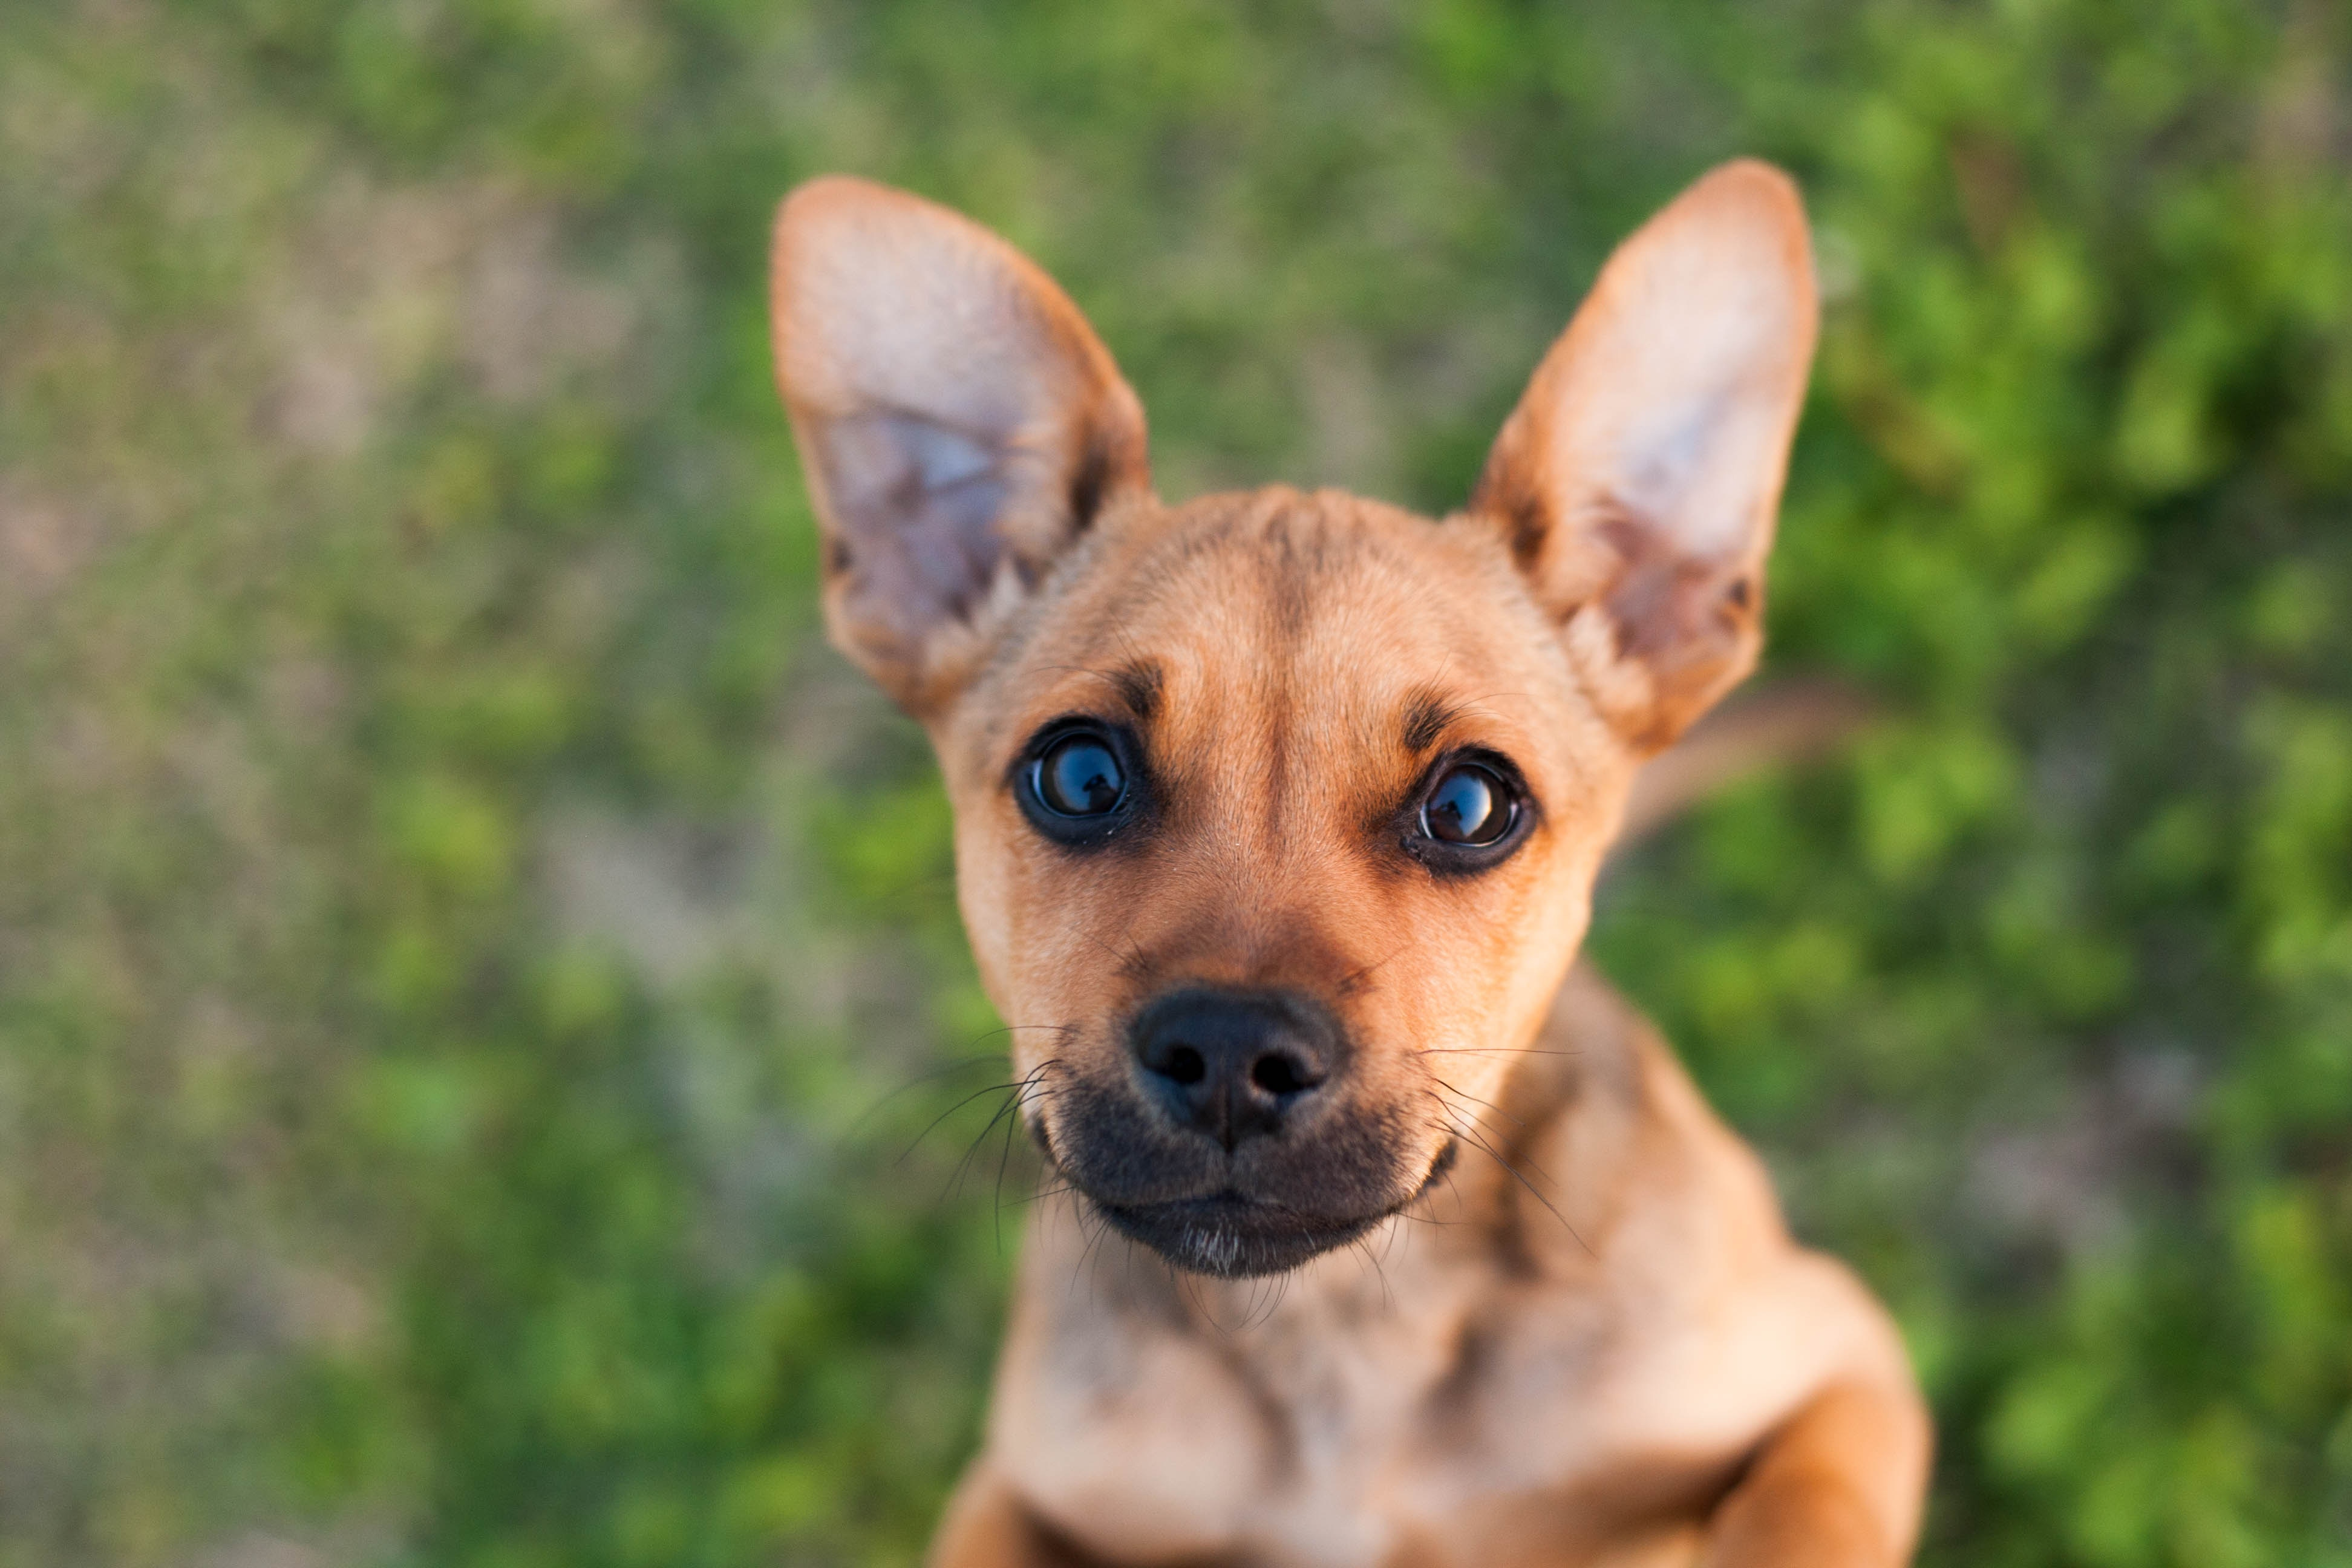 64713 download wallpaper Animals, Puppy, Dog, Muzzle screensavers and pictures for free